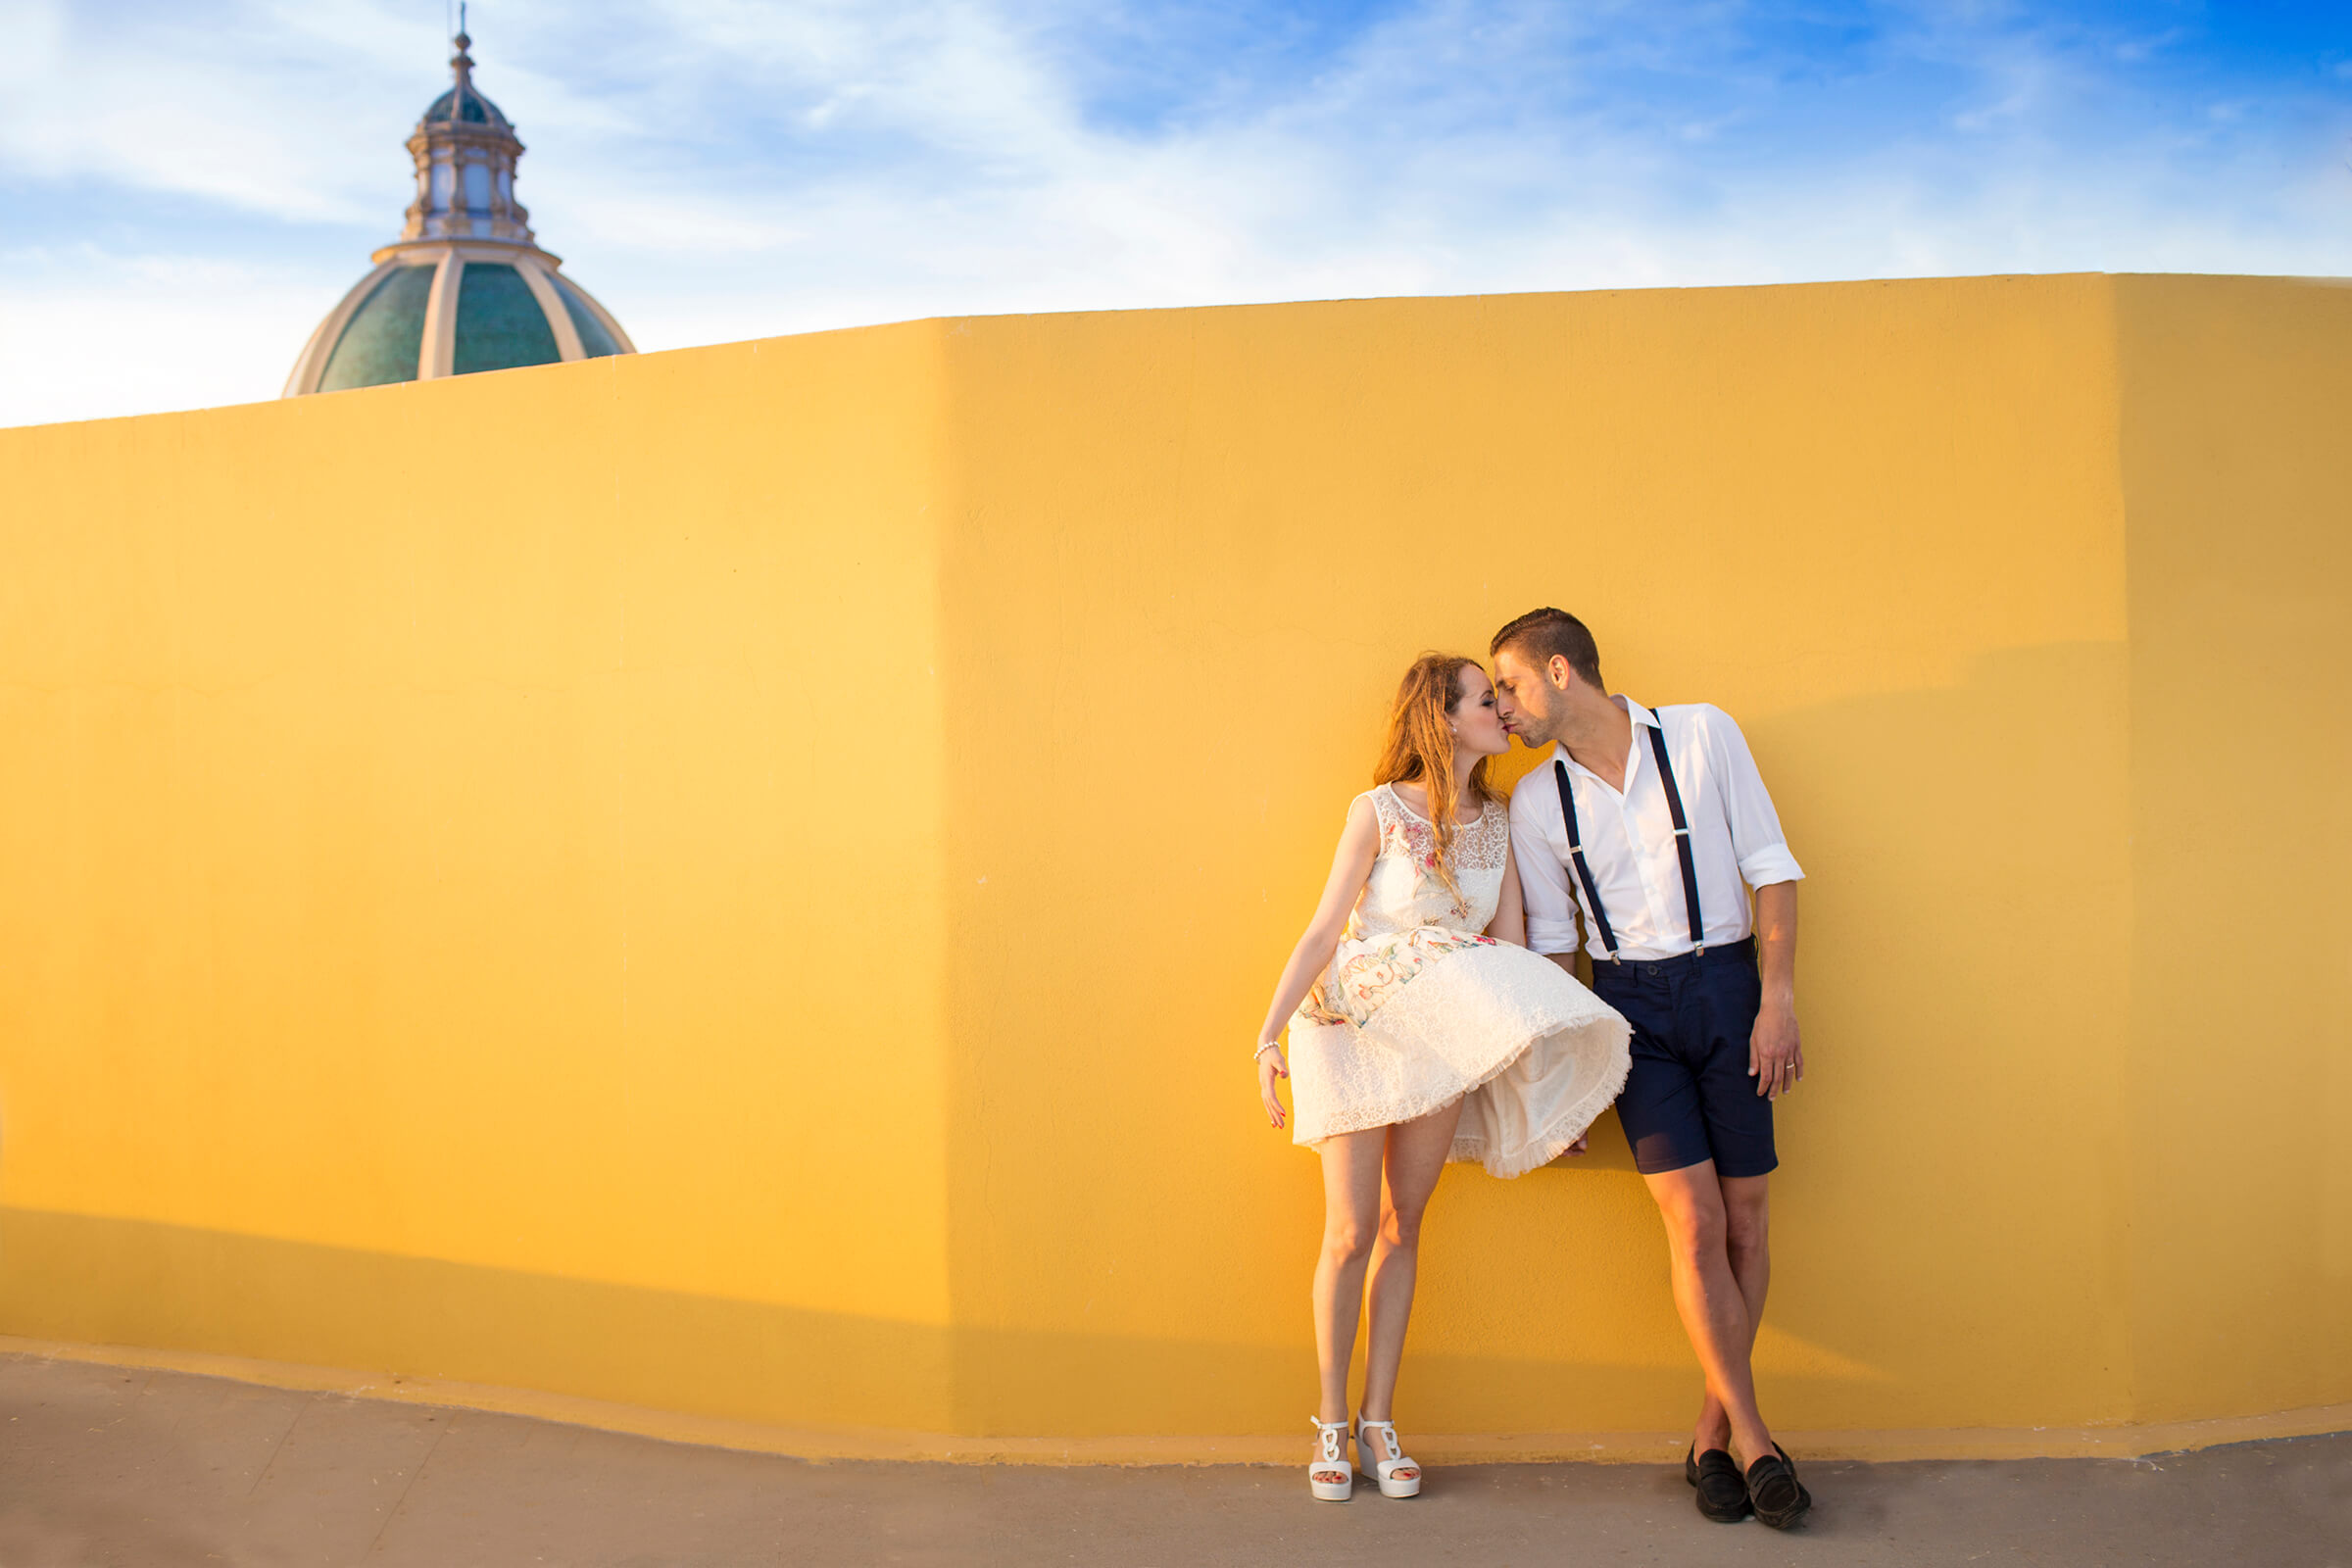 engagement-kiss-against-yellow-wall-in-italy-nino-lombardo-photographer